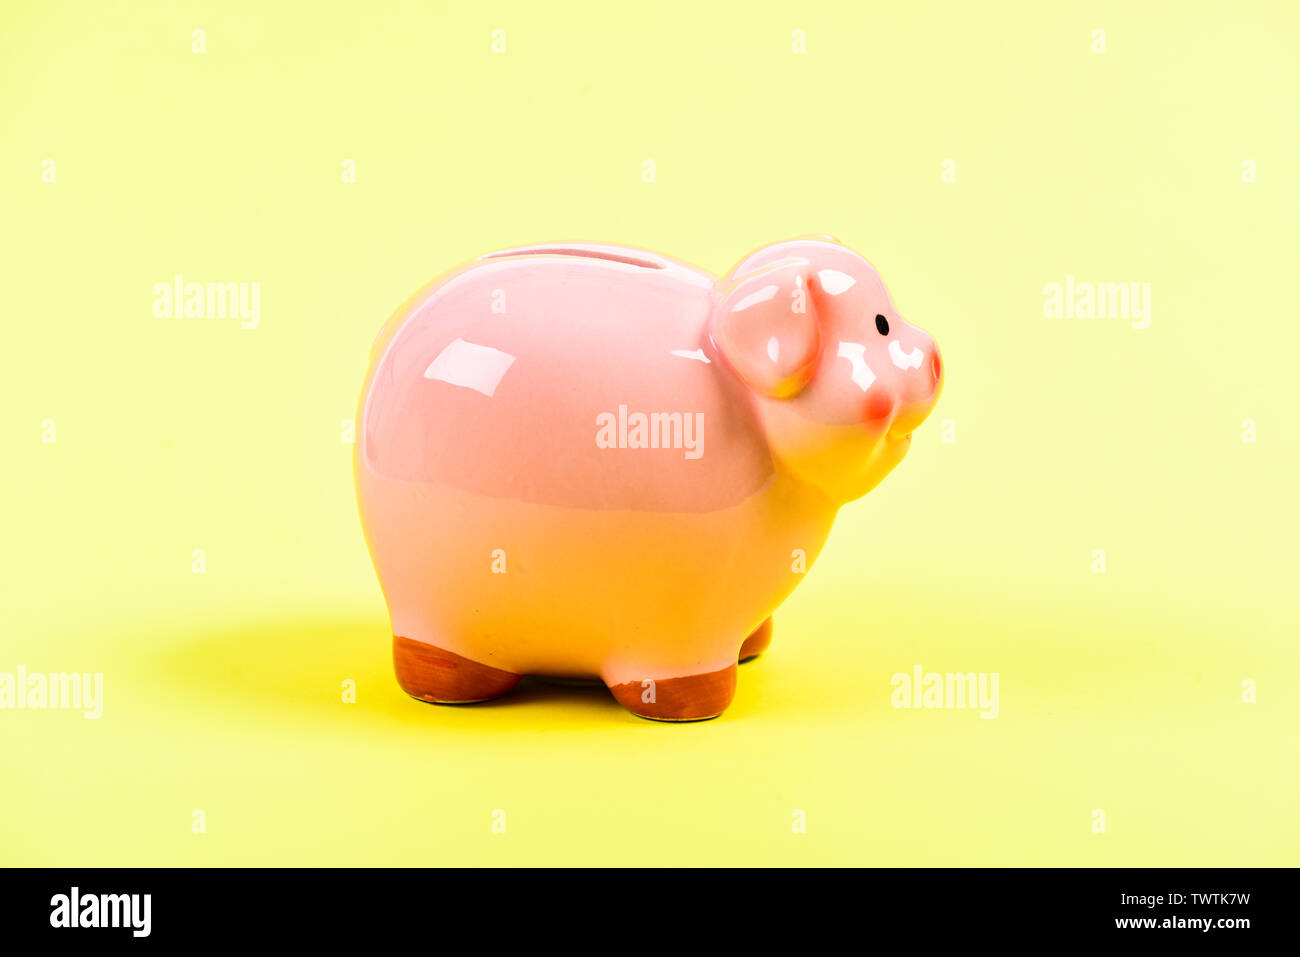 planning budget. financial problem. money saving. income management. piggy bank on yellow background. Time save Concept. Moneybox for coins with pig face. No to bribing. bribe. - Stock Image